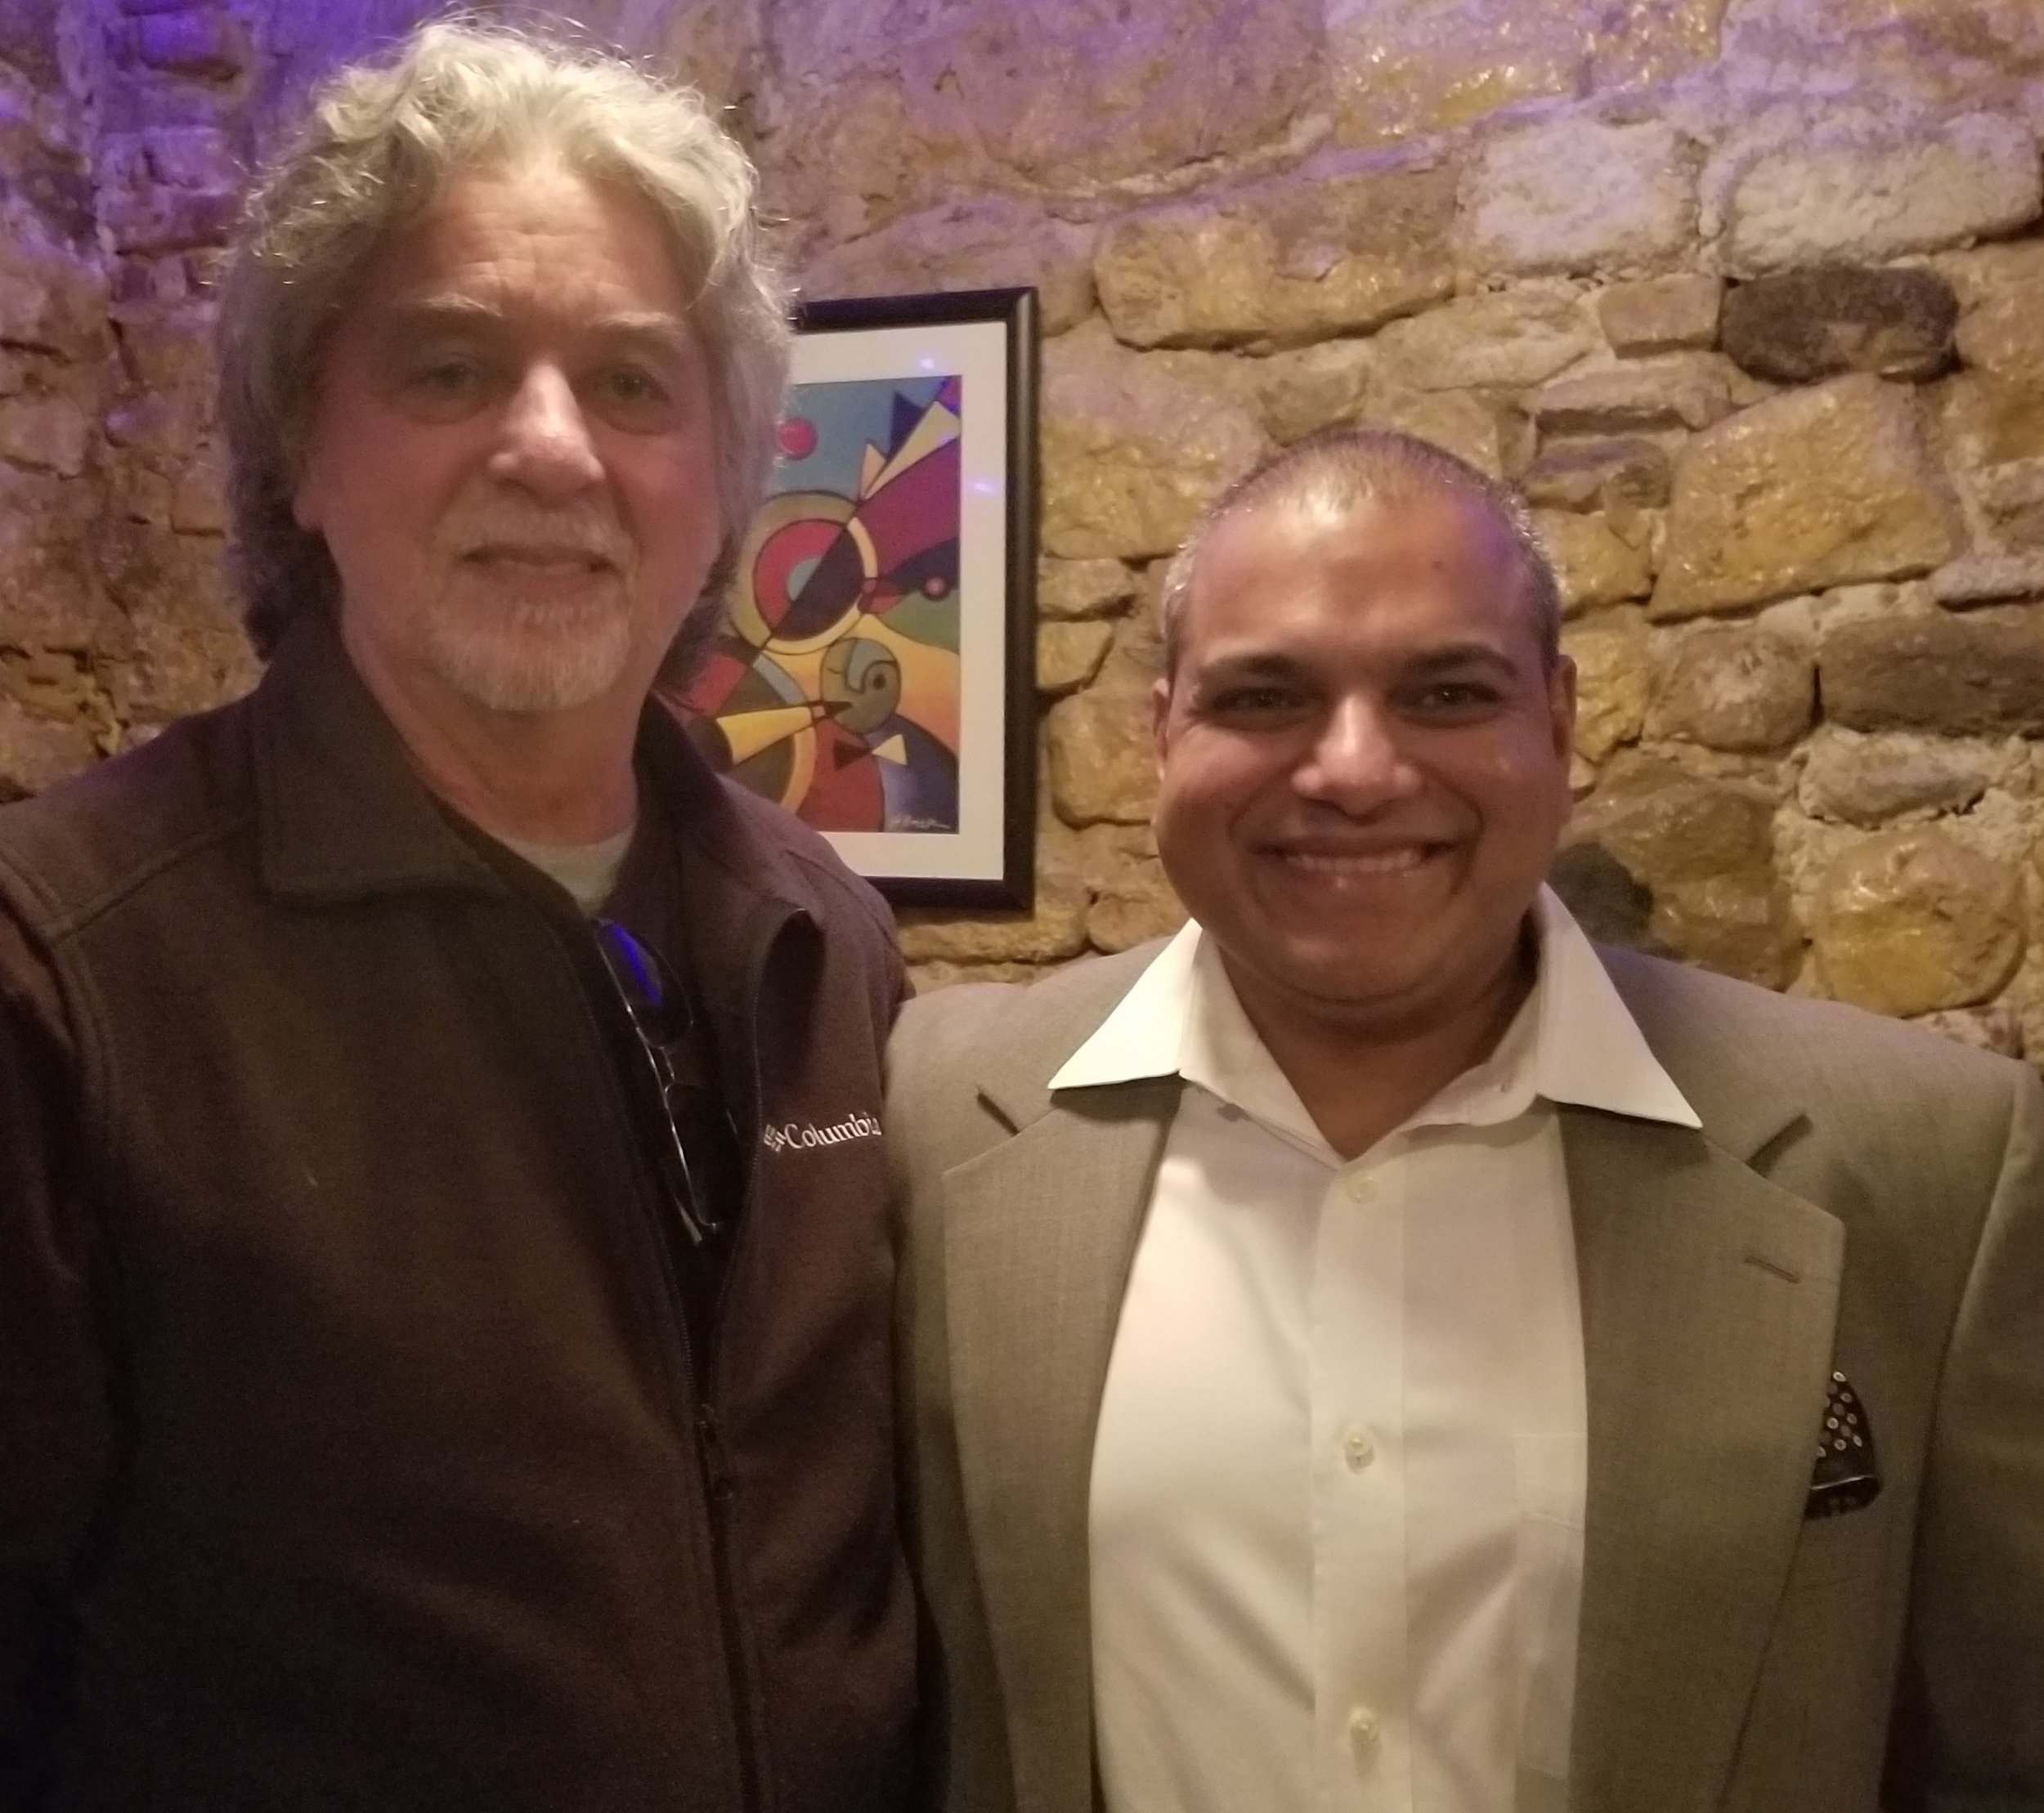 Yogesh and dean celebrate together at a holiday party